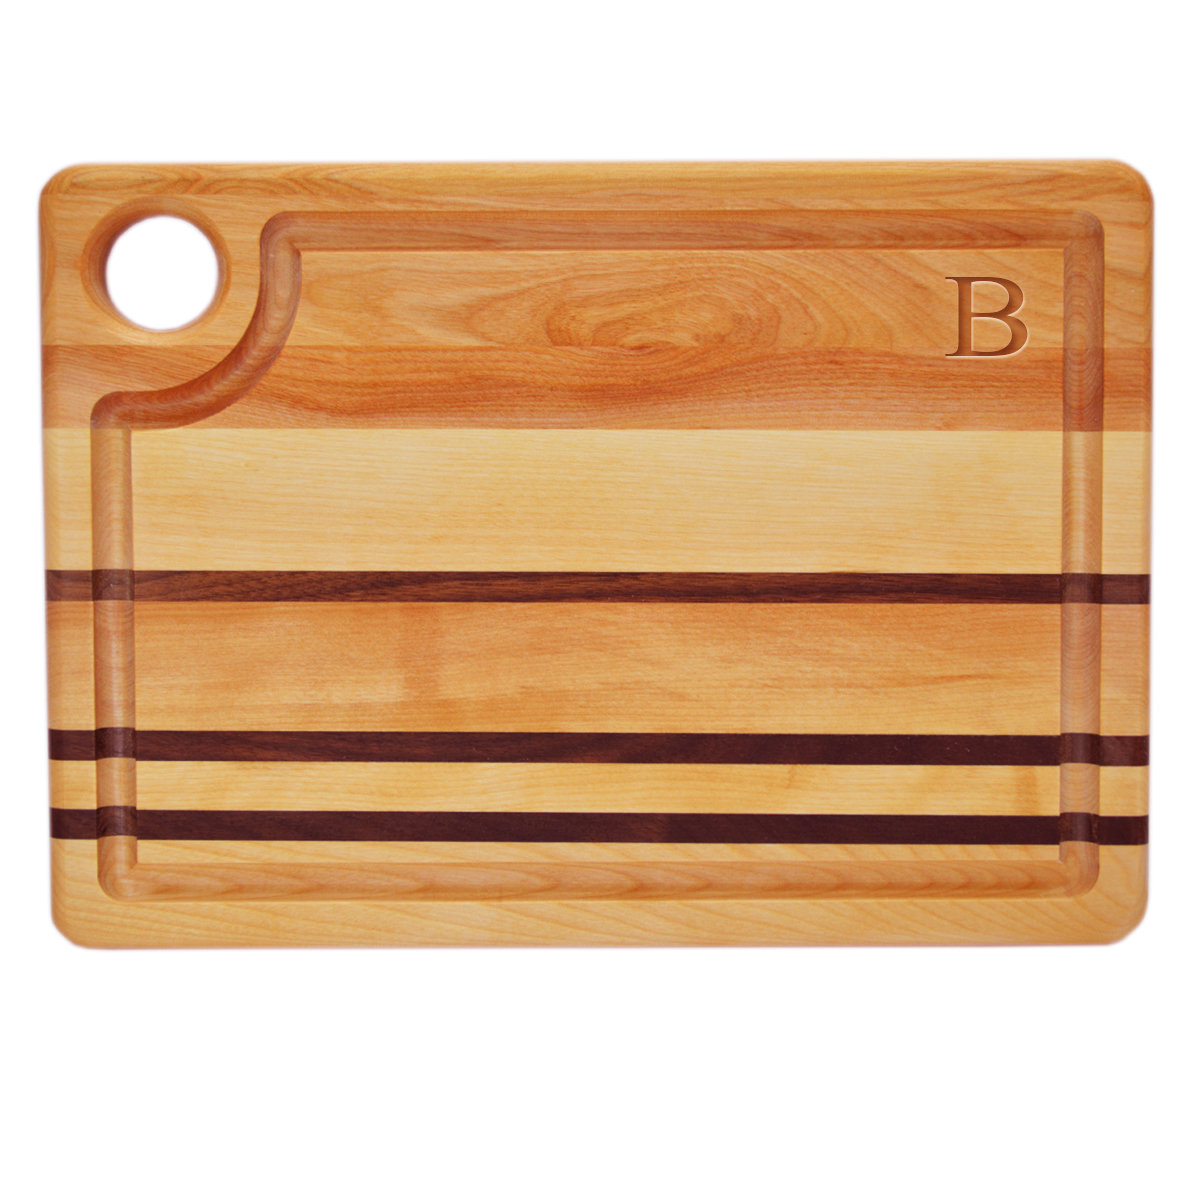 Integrity Board Steak Carving Board